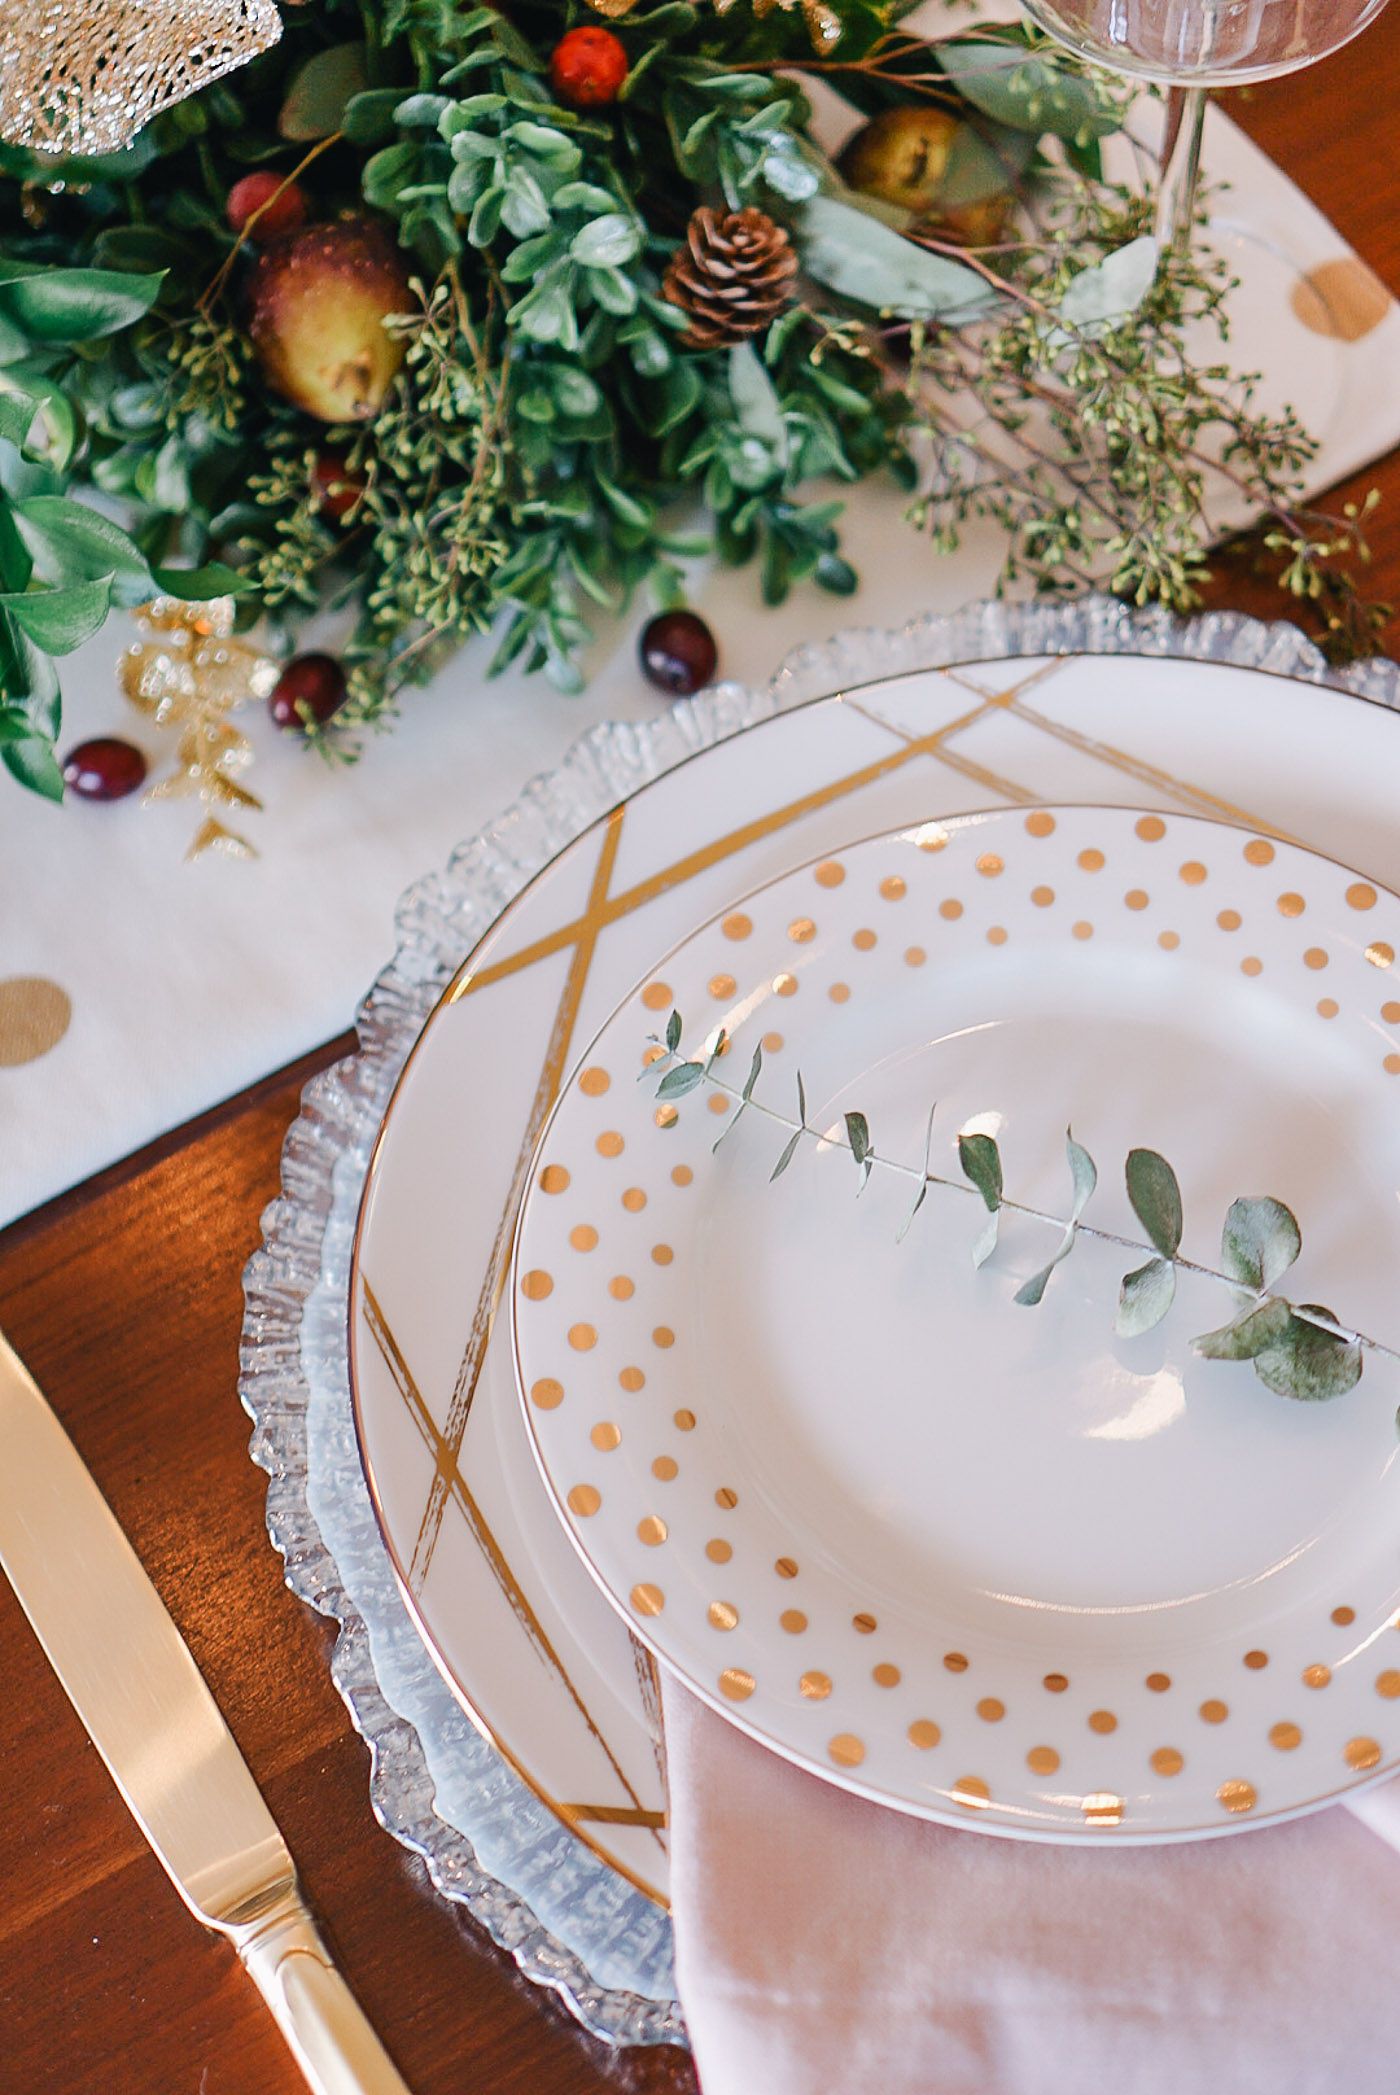 An easy DIY to create your own lush garland table runner by Lauren Cermak of the Southern lifestyle blog, Going For Grace.